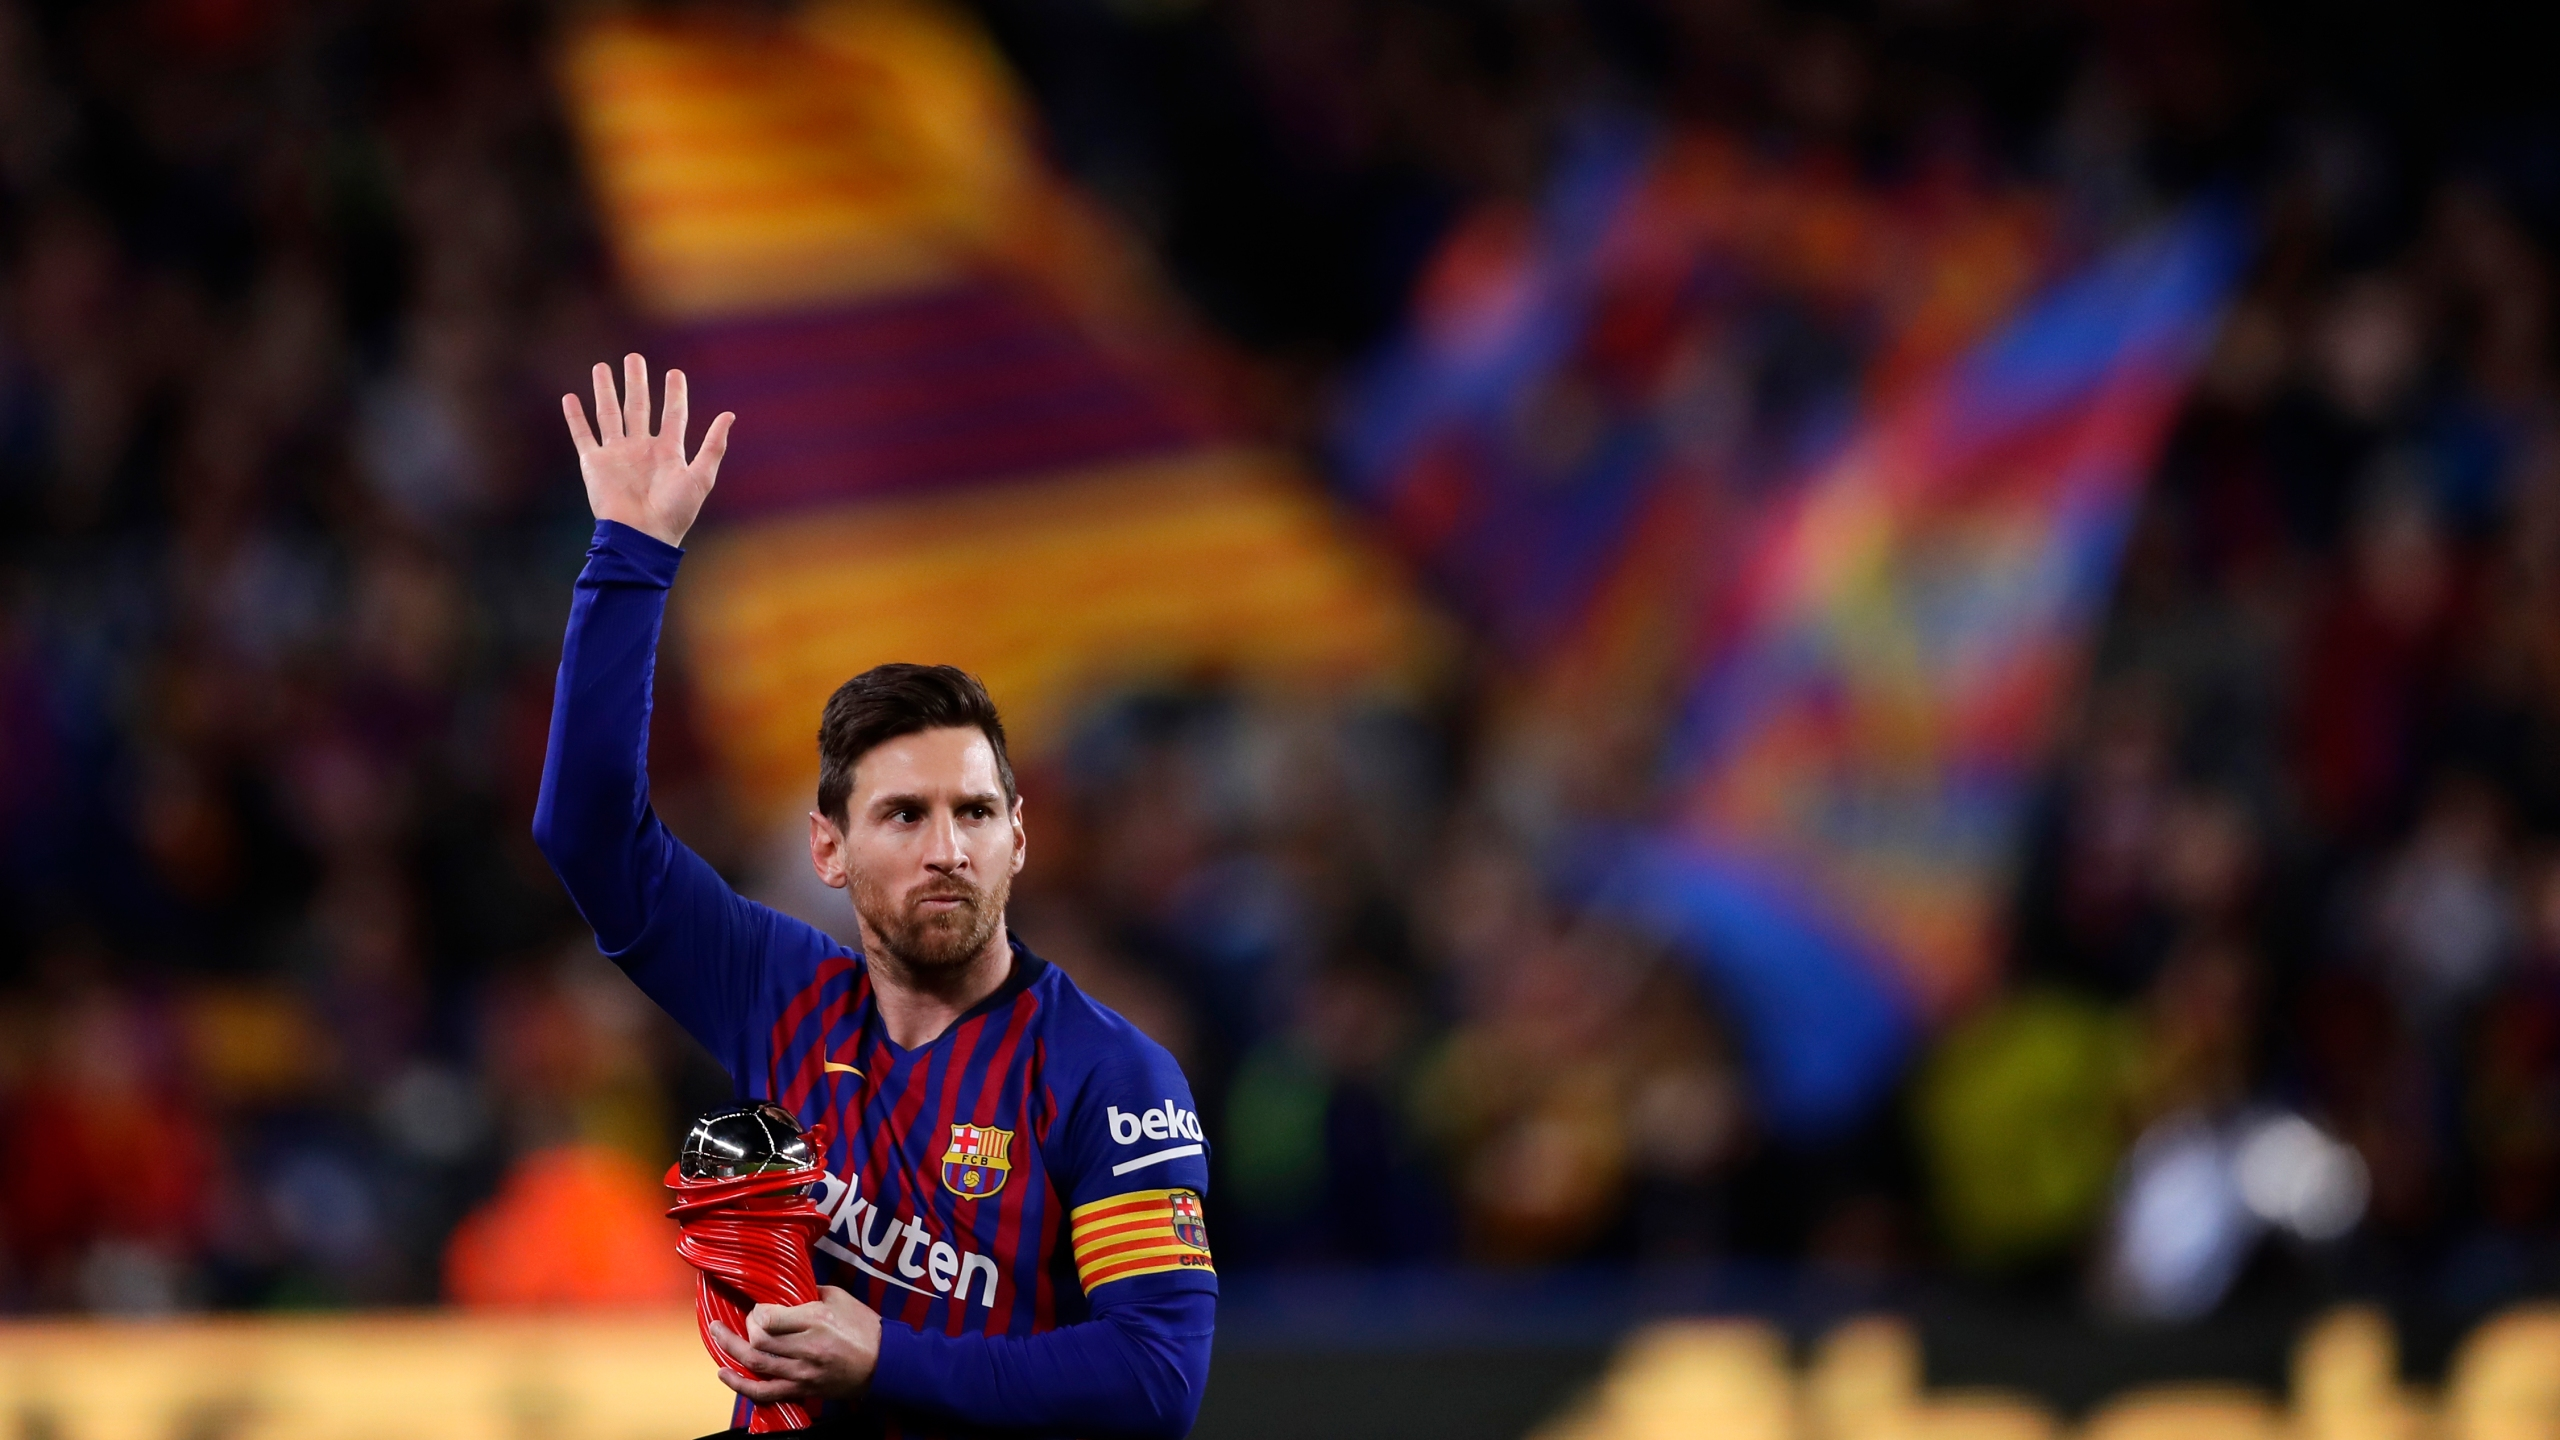 In this April 6, 2019, file photo, Barcelona forward Lionel Messi waves at the crowd as he holds the trophy of the best Spanish La Liga player prior to a soccer match between FC Barcelona and Atletico Madrid at the Camp Nou stadium in Barcelona, Spain. (AP Photo/Manu Fernandez, File)